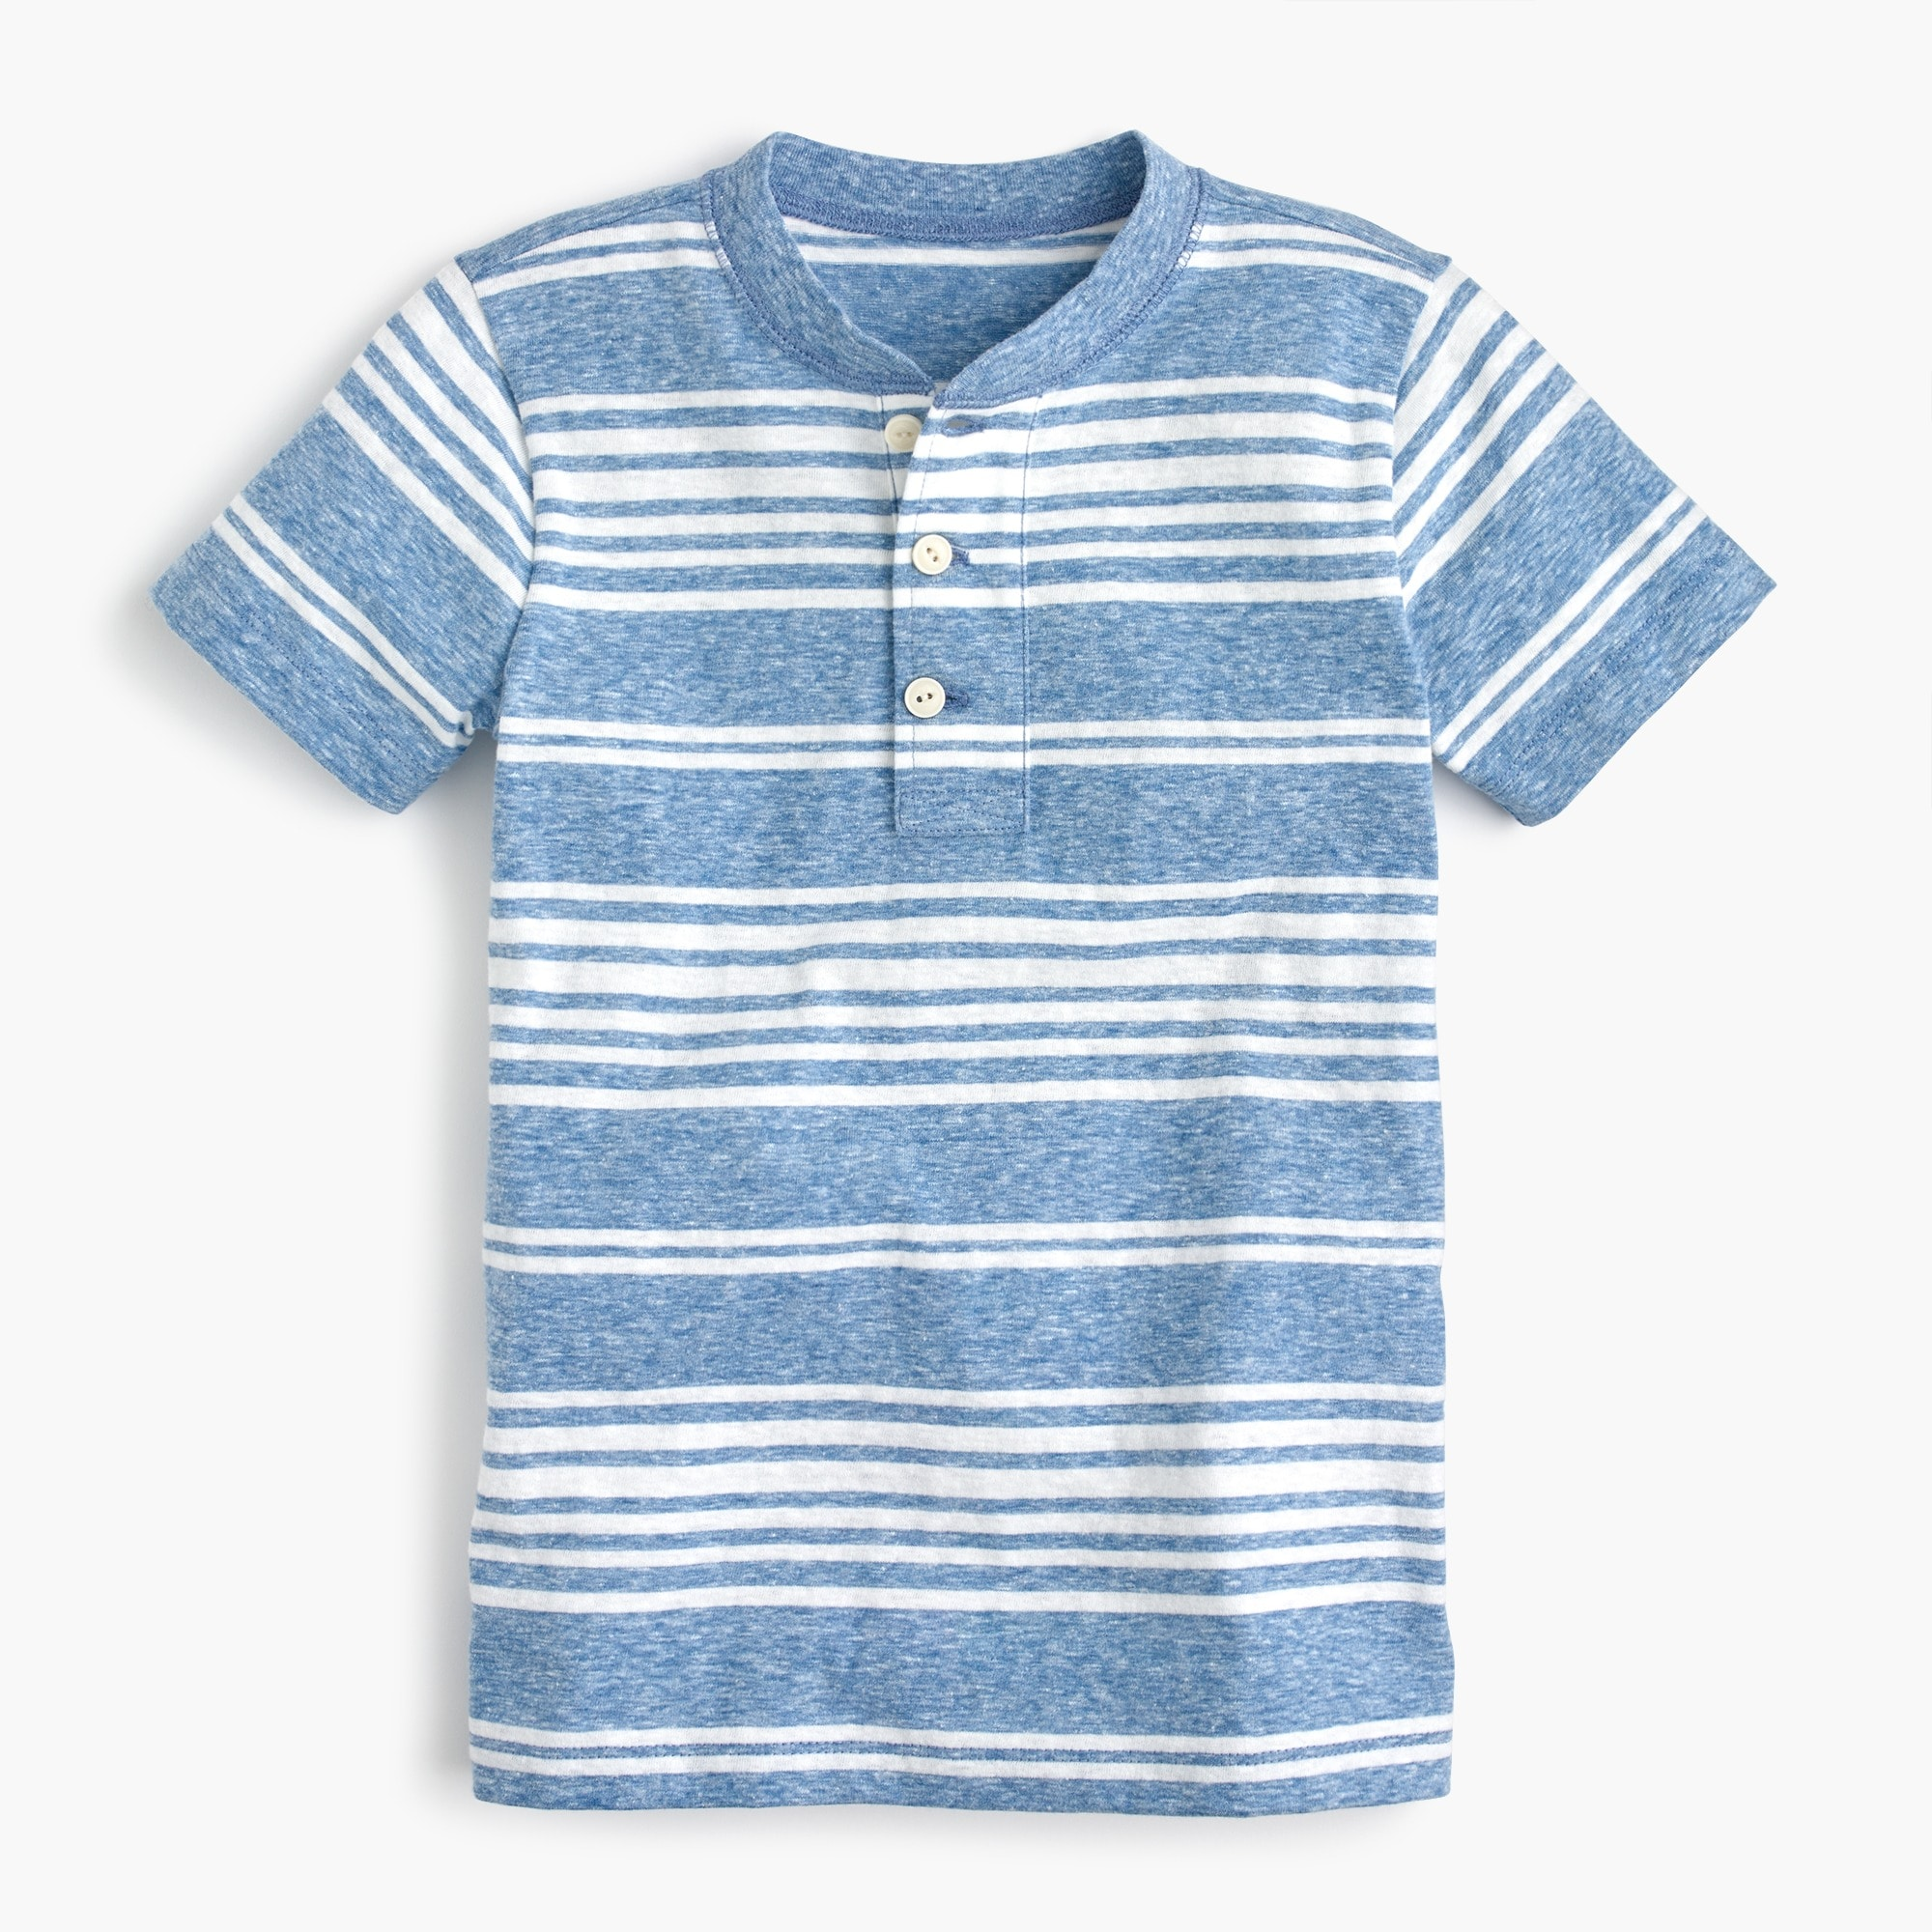 Boys' short-sleeve striped henley shirt in the softest jersey boy new arrivals c